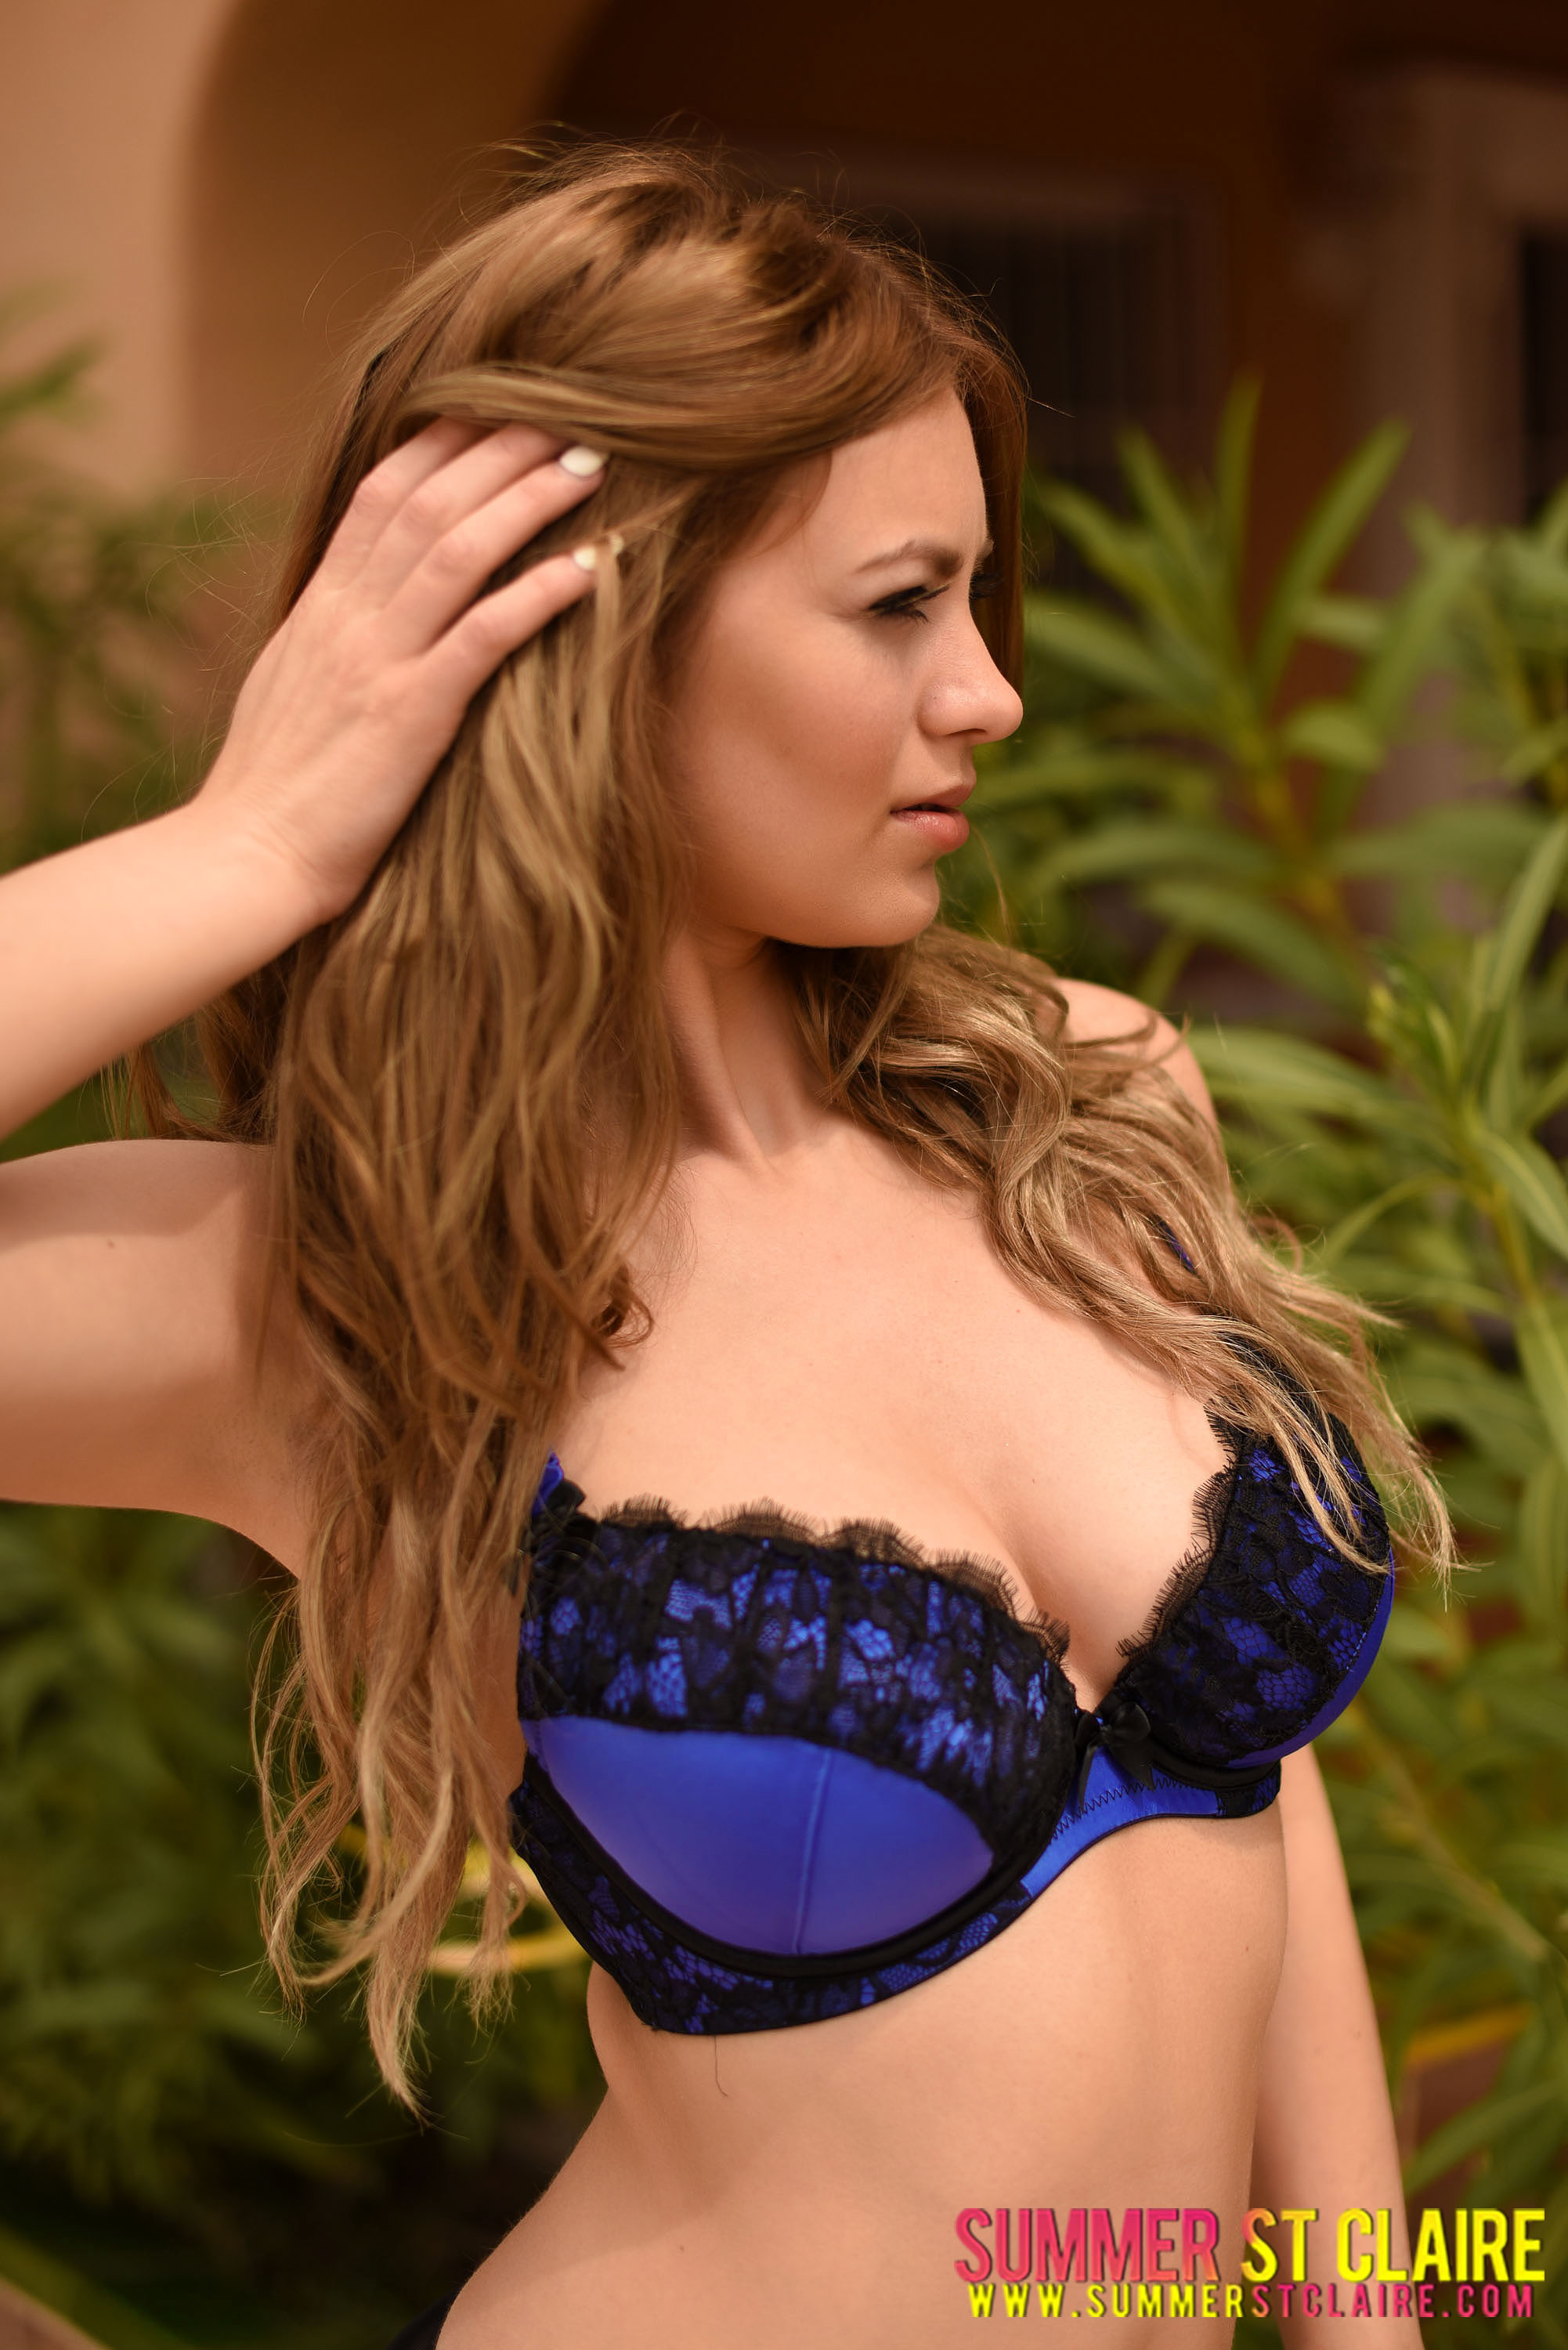 Summer St Claire Big Boobs Blue Bra and High Heels